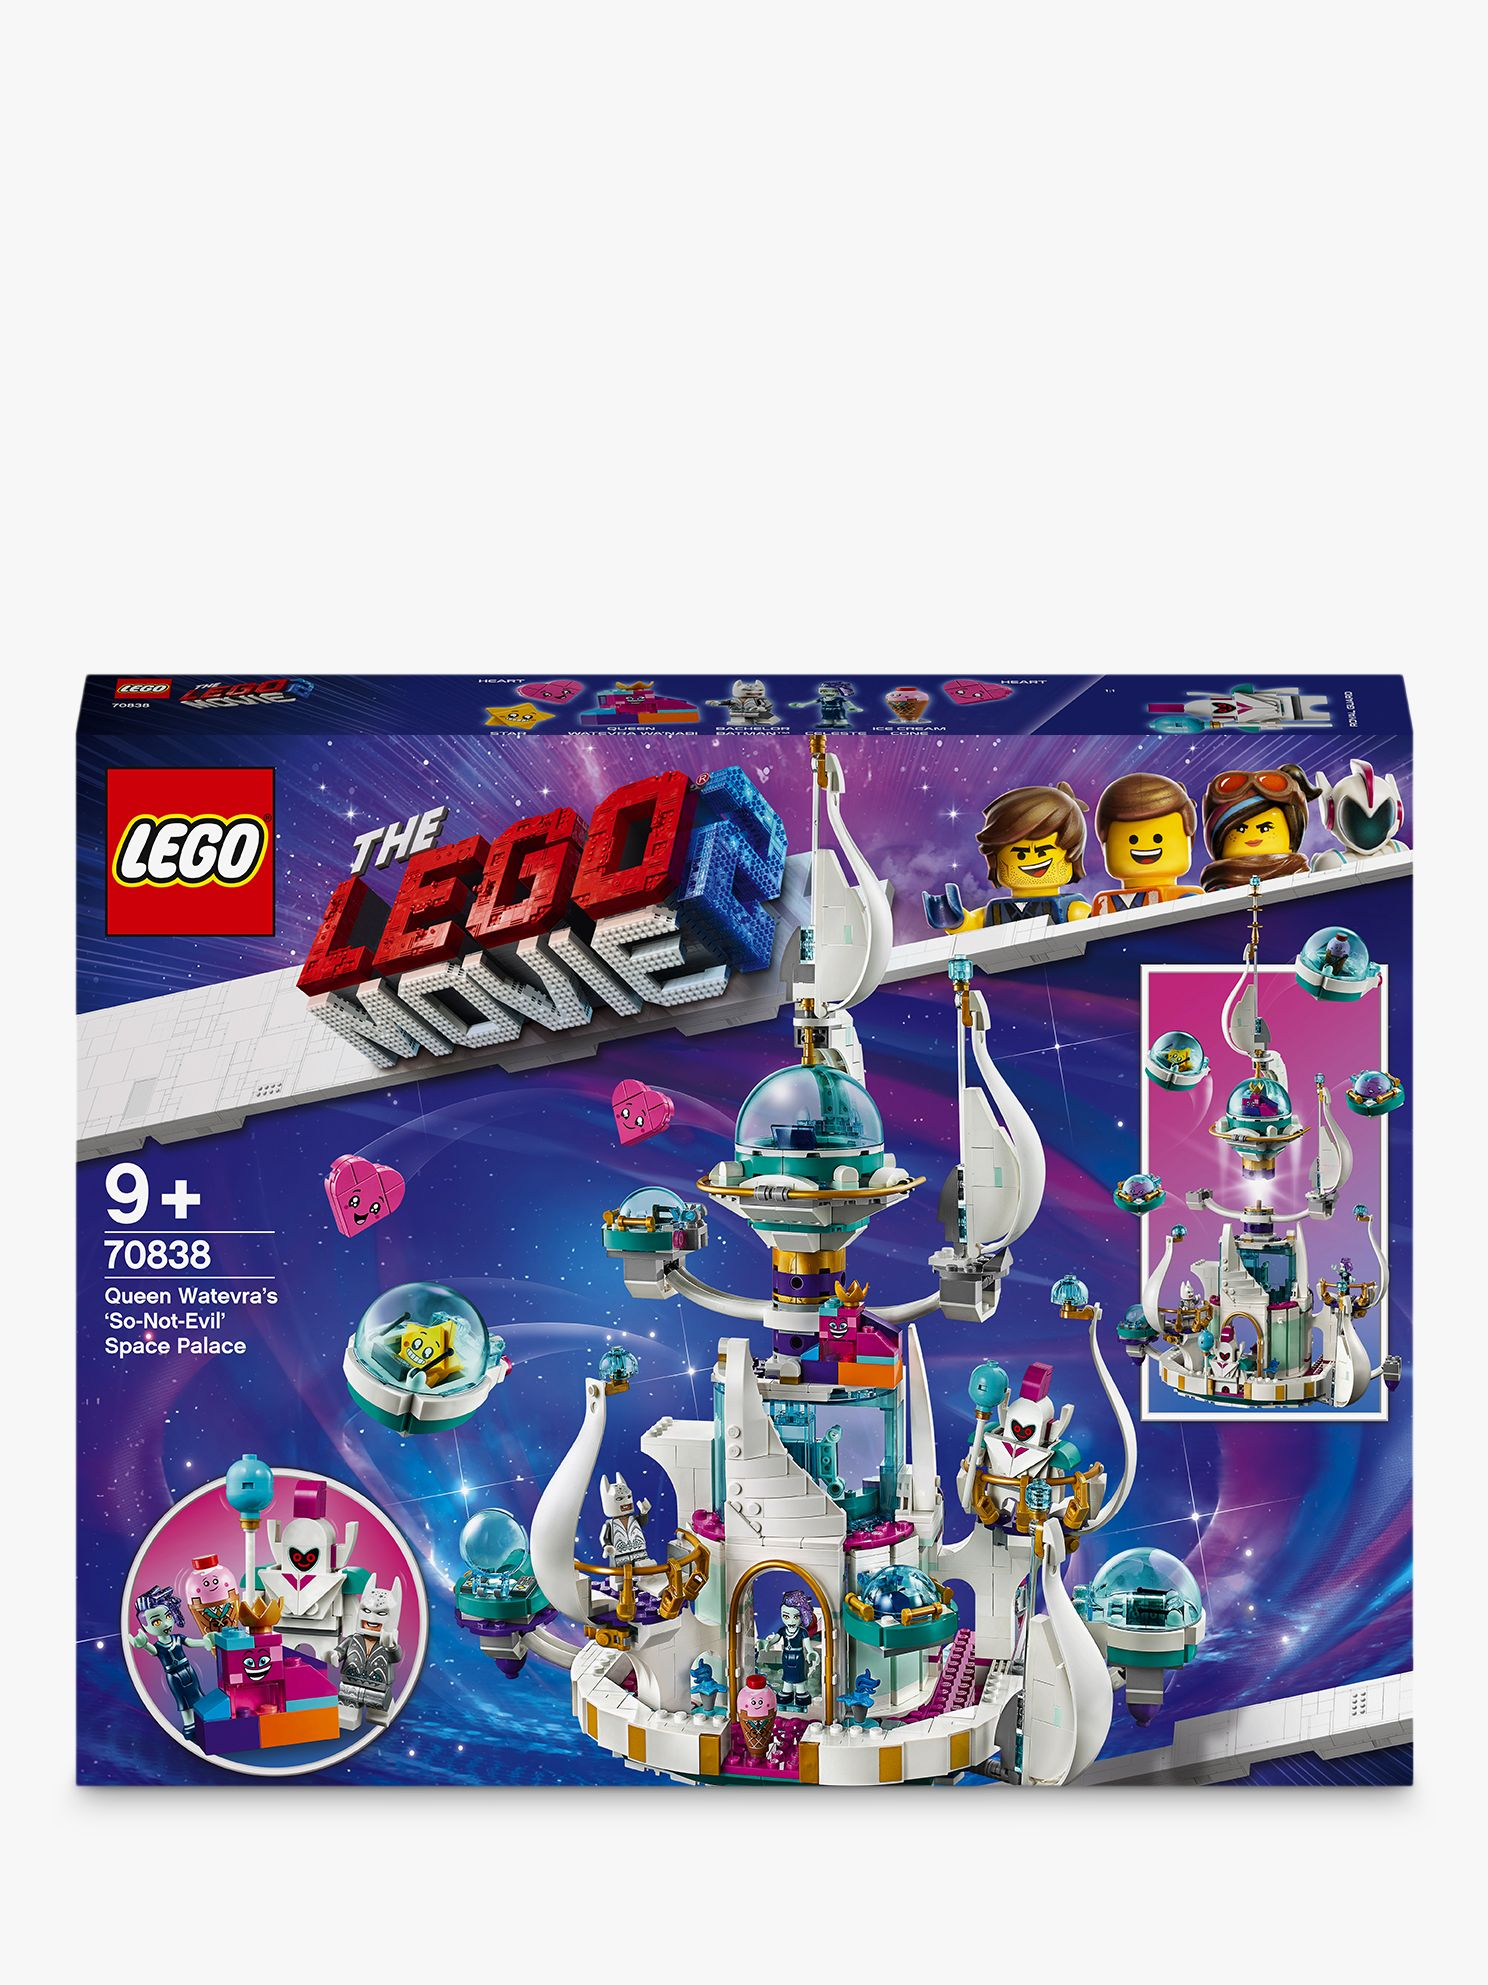 Lego LEGO THE LEGO MOVIE 2 70838 Queen Watevra's 'So-Not-Evil' Space Palace